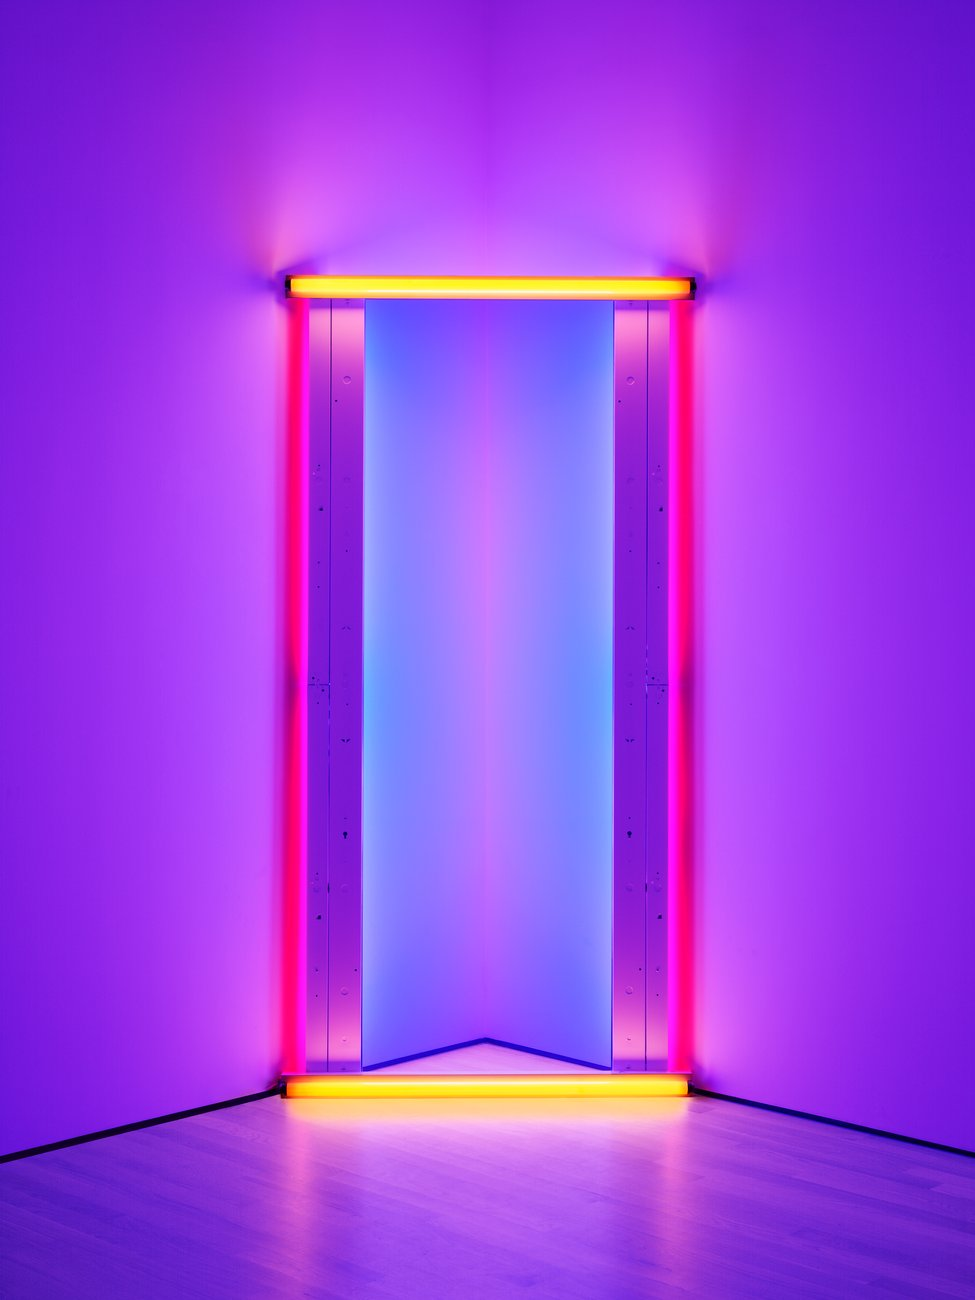 Artwork image, Dan Flavin's untitled (to Barnett Newman) two